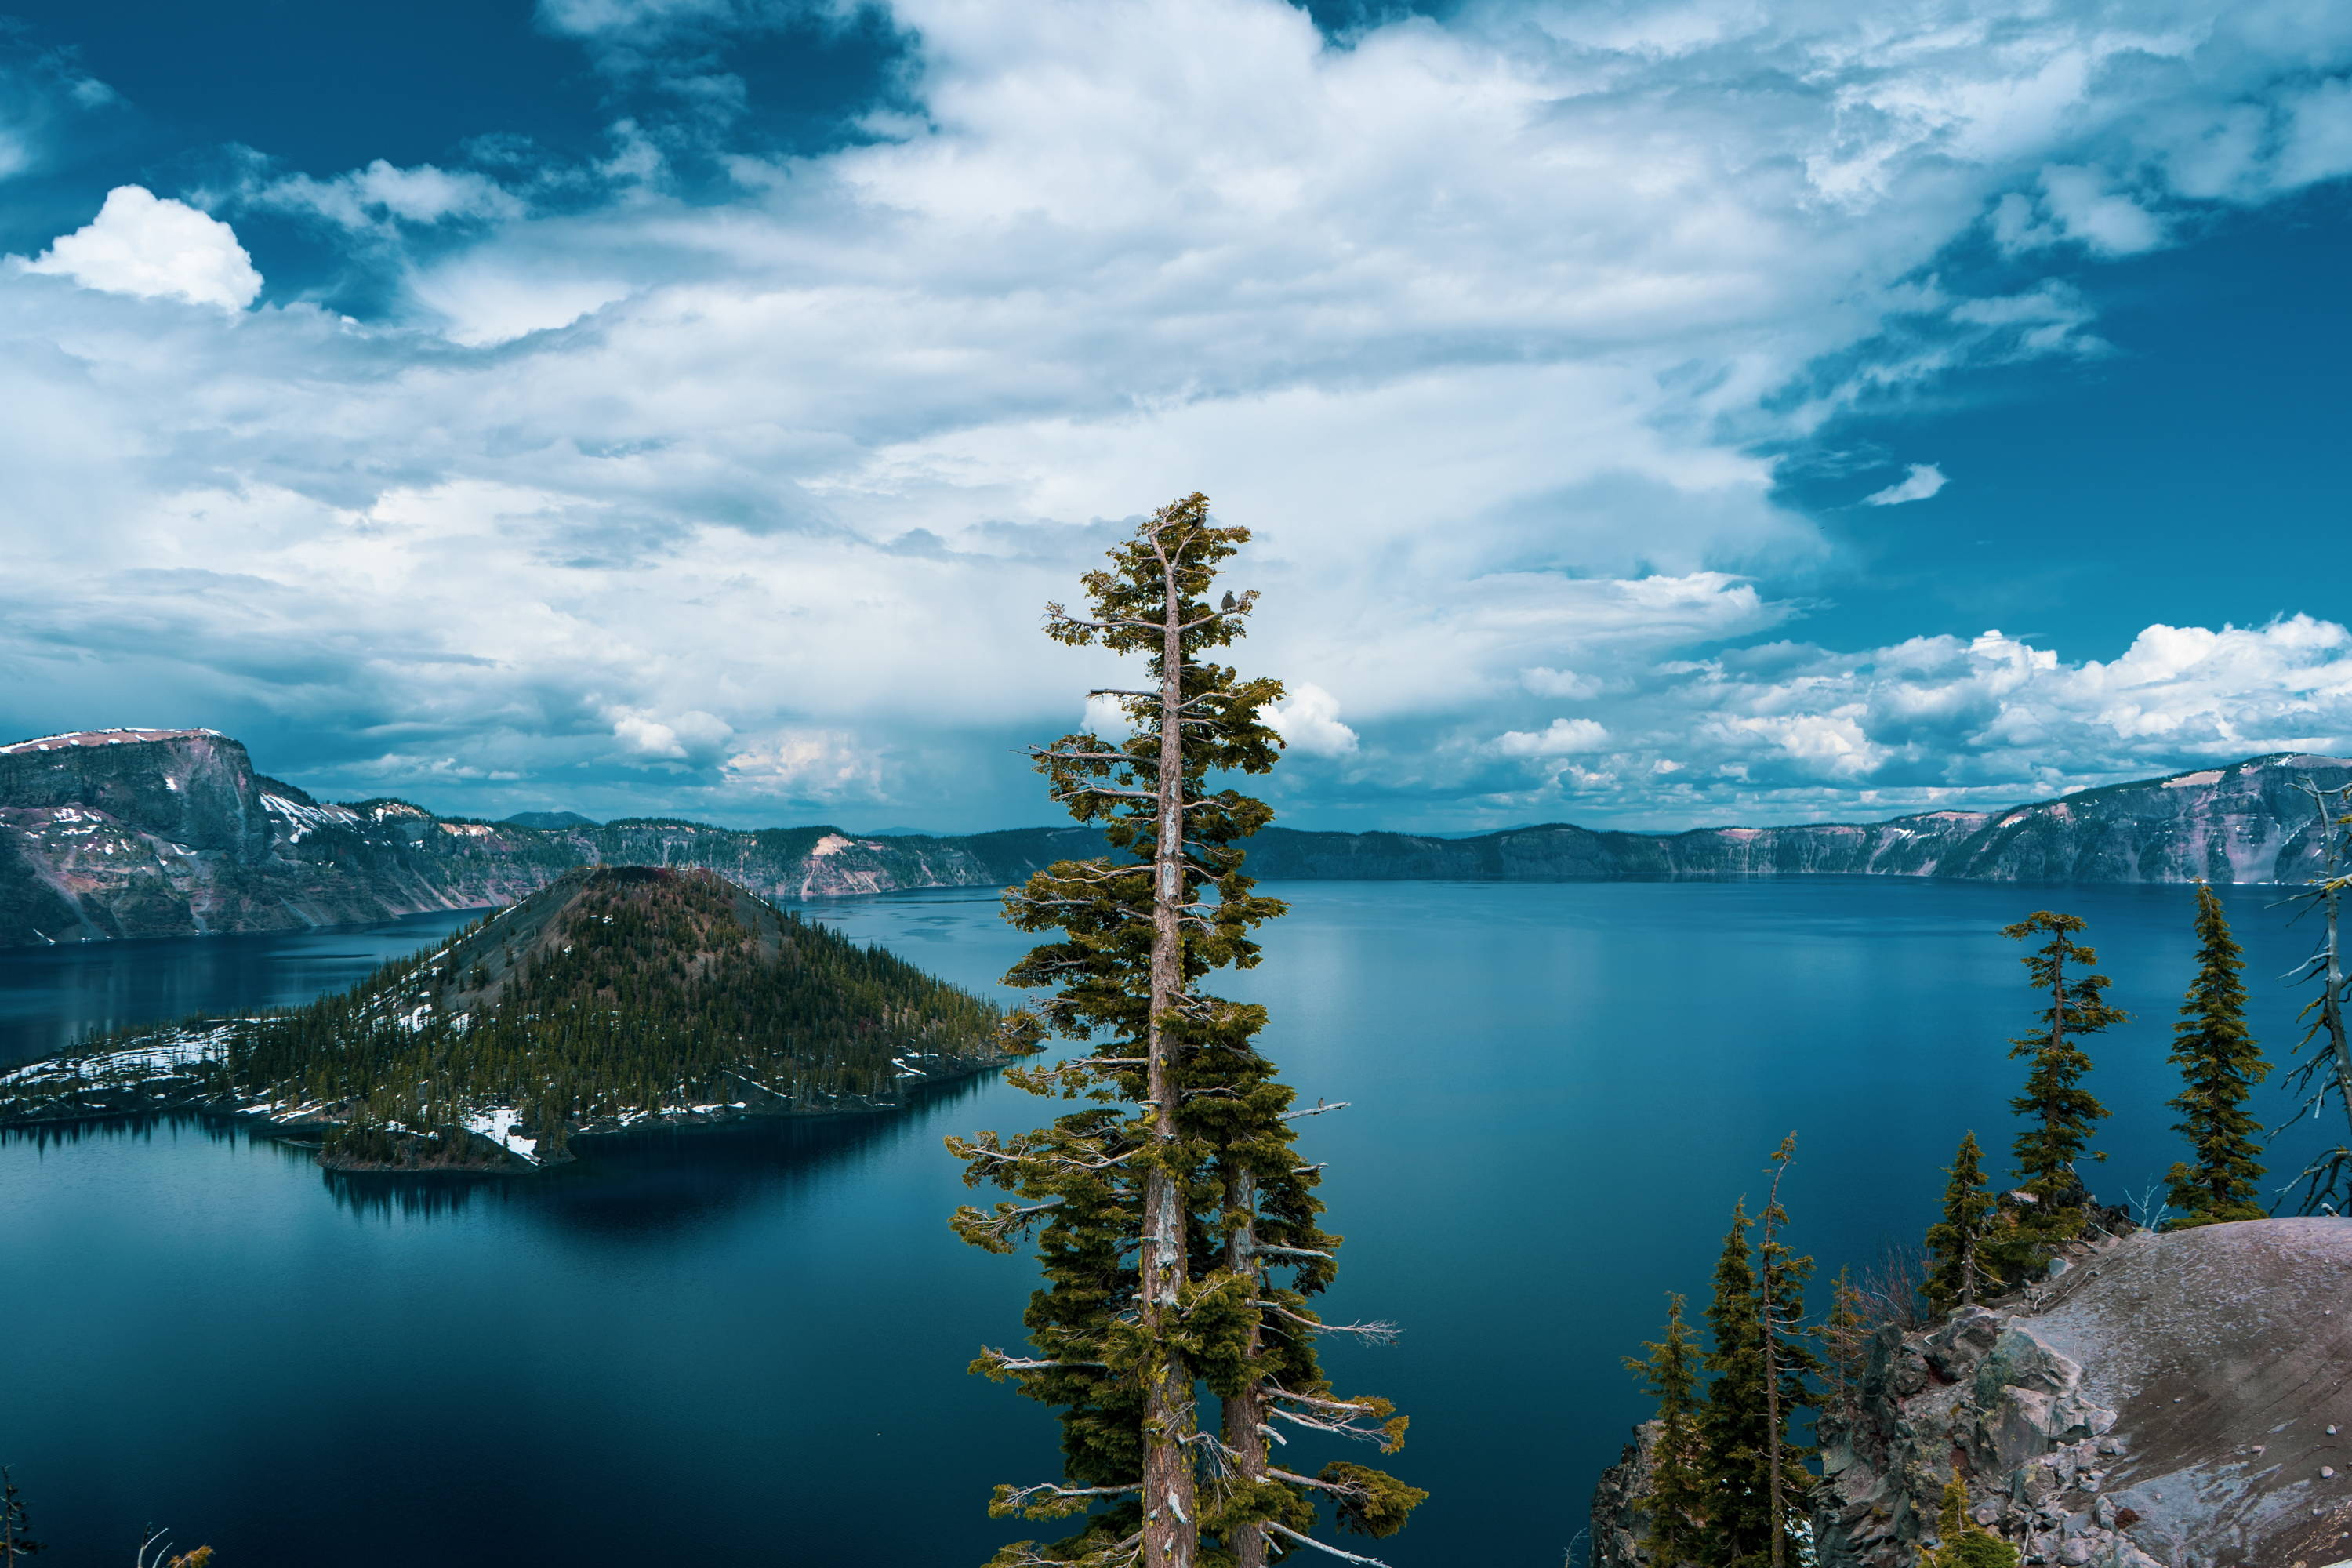 National Parks in Oregon. Lone tree stands in front of large lake with edge of crater all around at Crater Lake National Park.